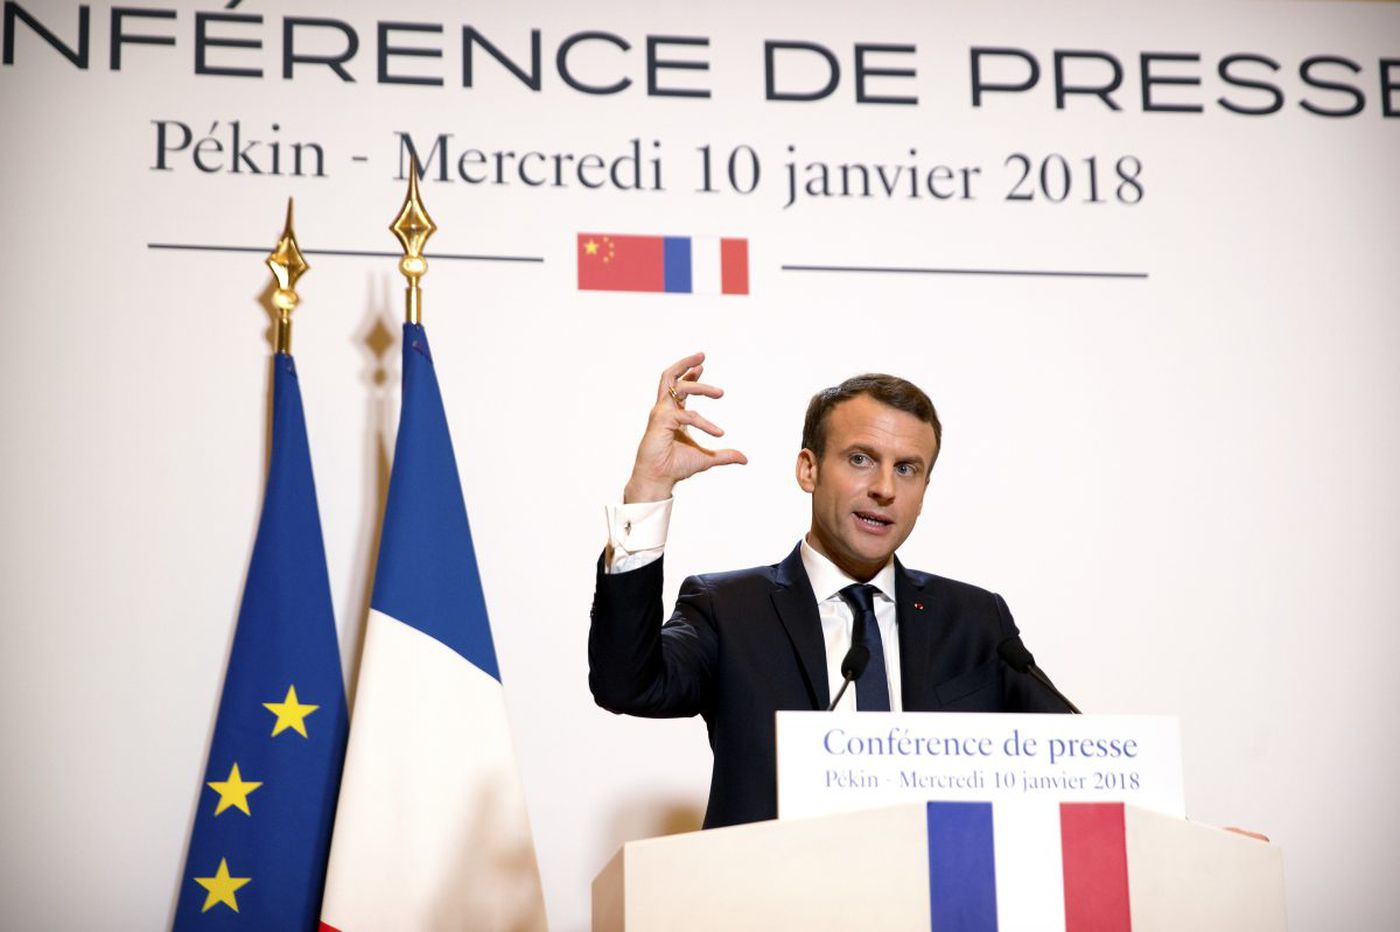 France weighs a law to rein in 'fake news,' raising fears for freedom of speech